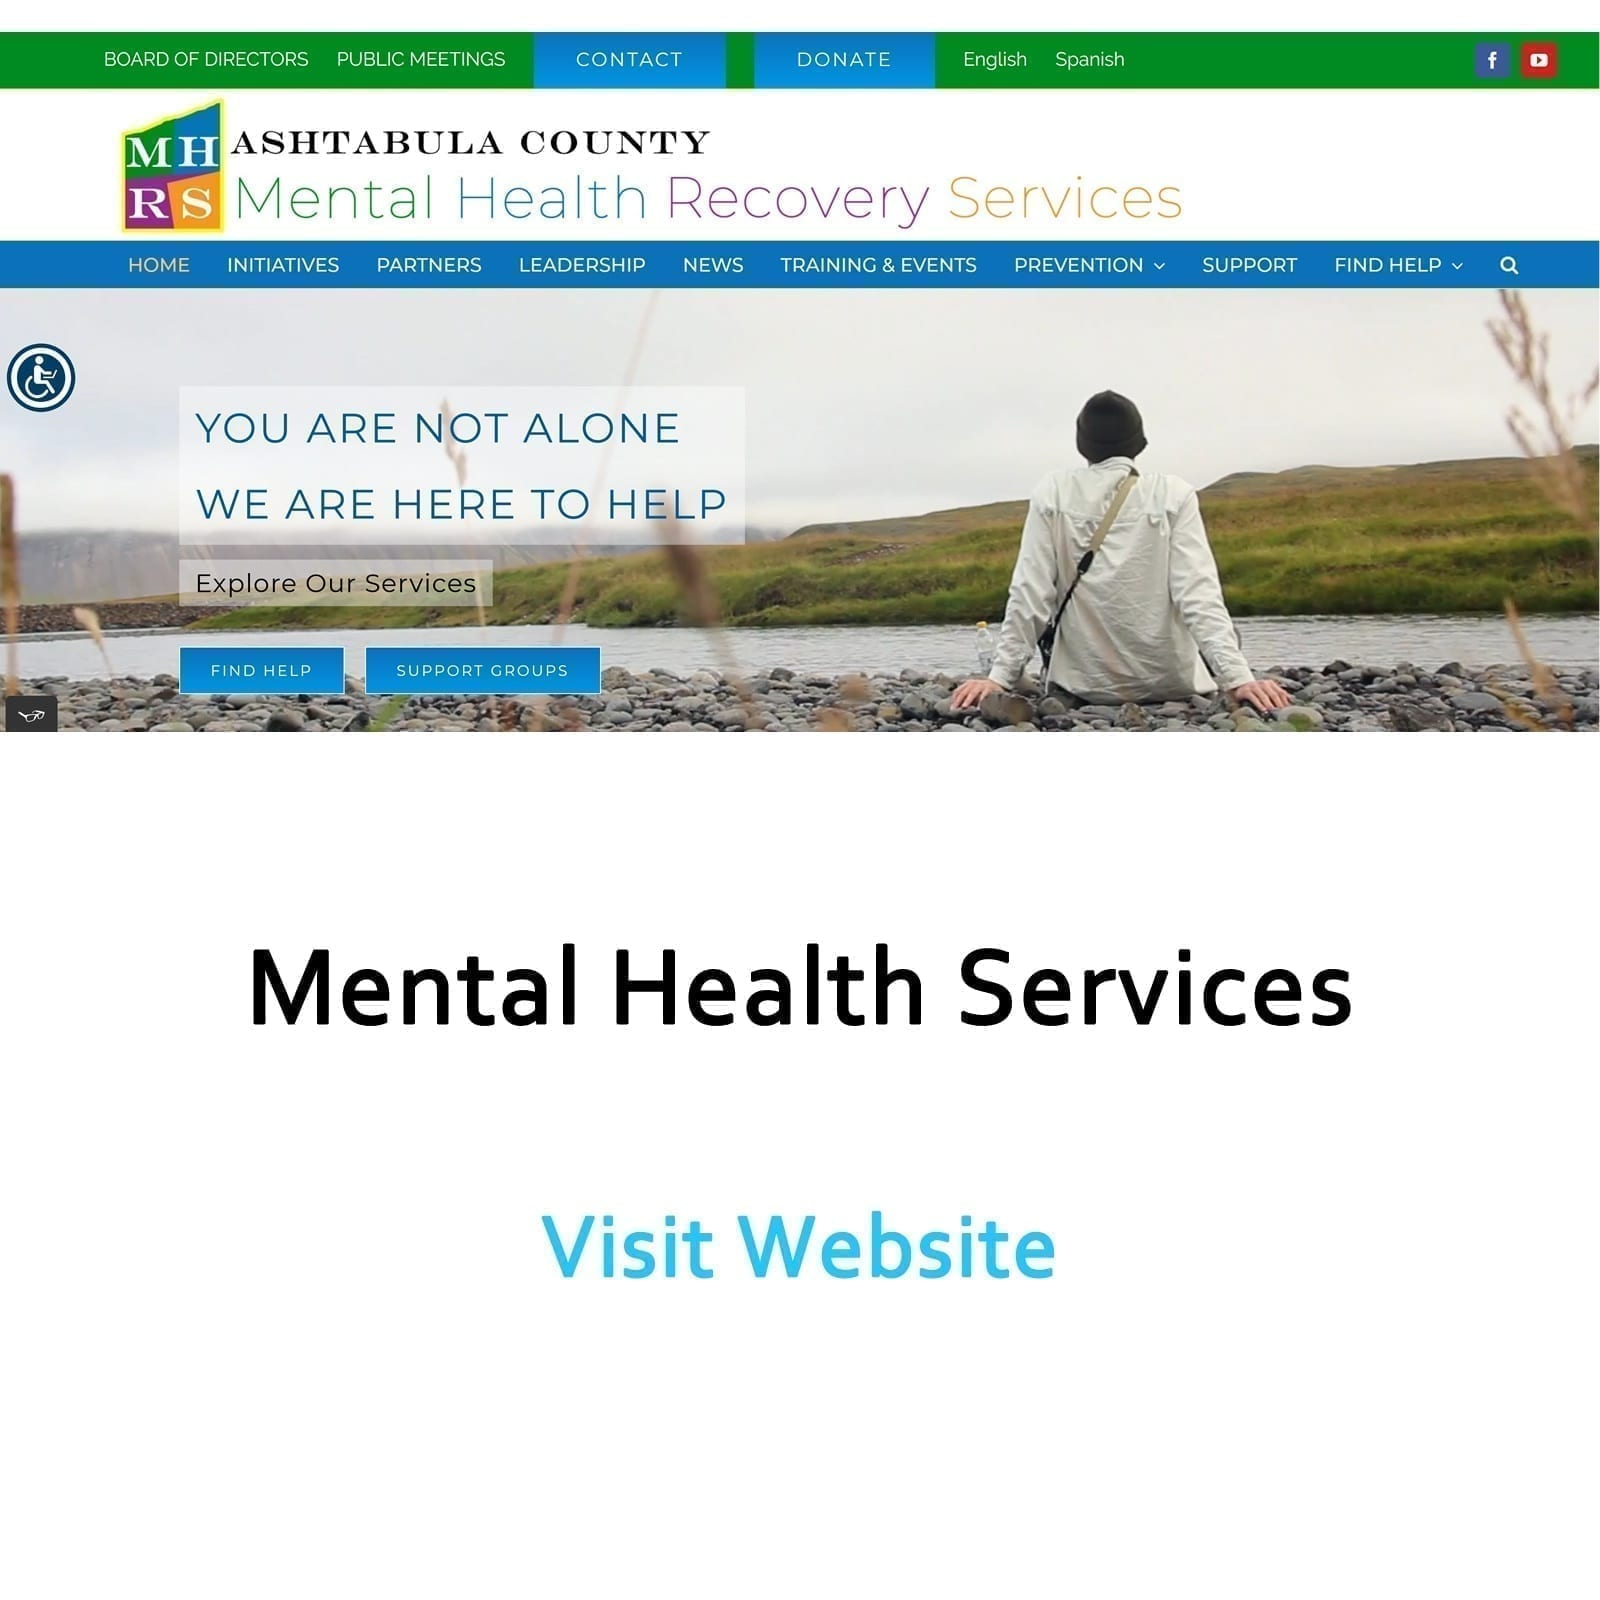 Image of Mental Health Recovery Services website